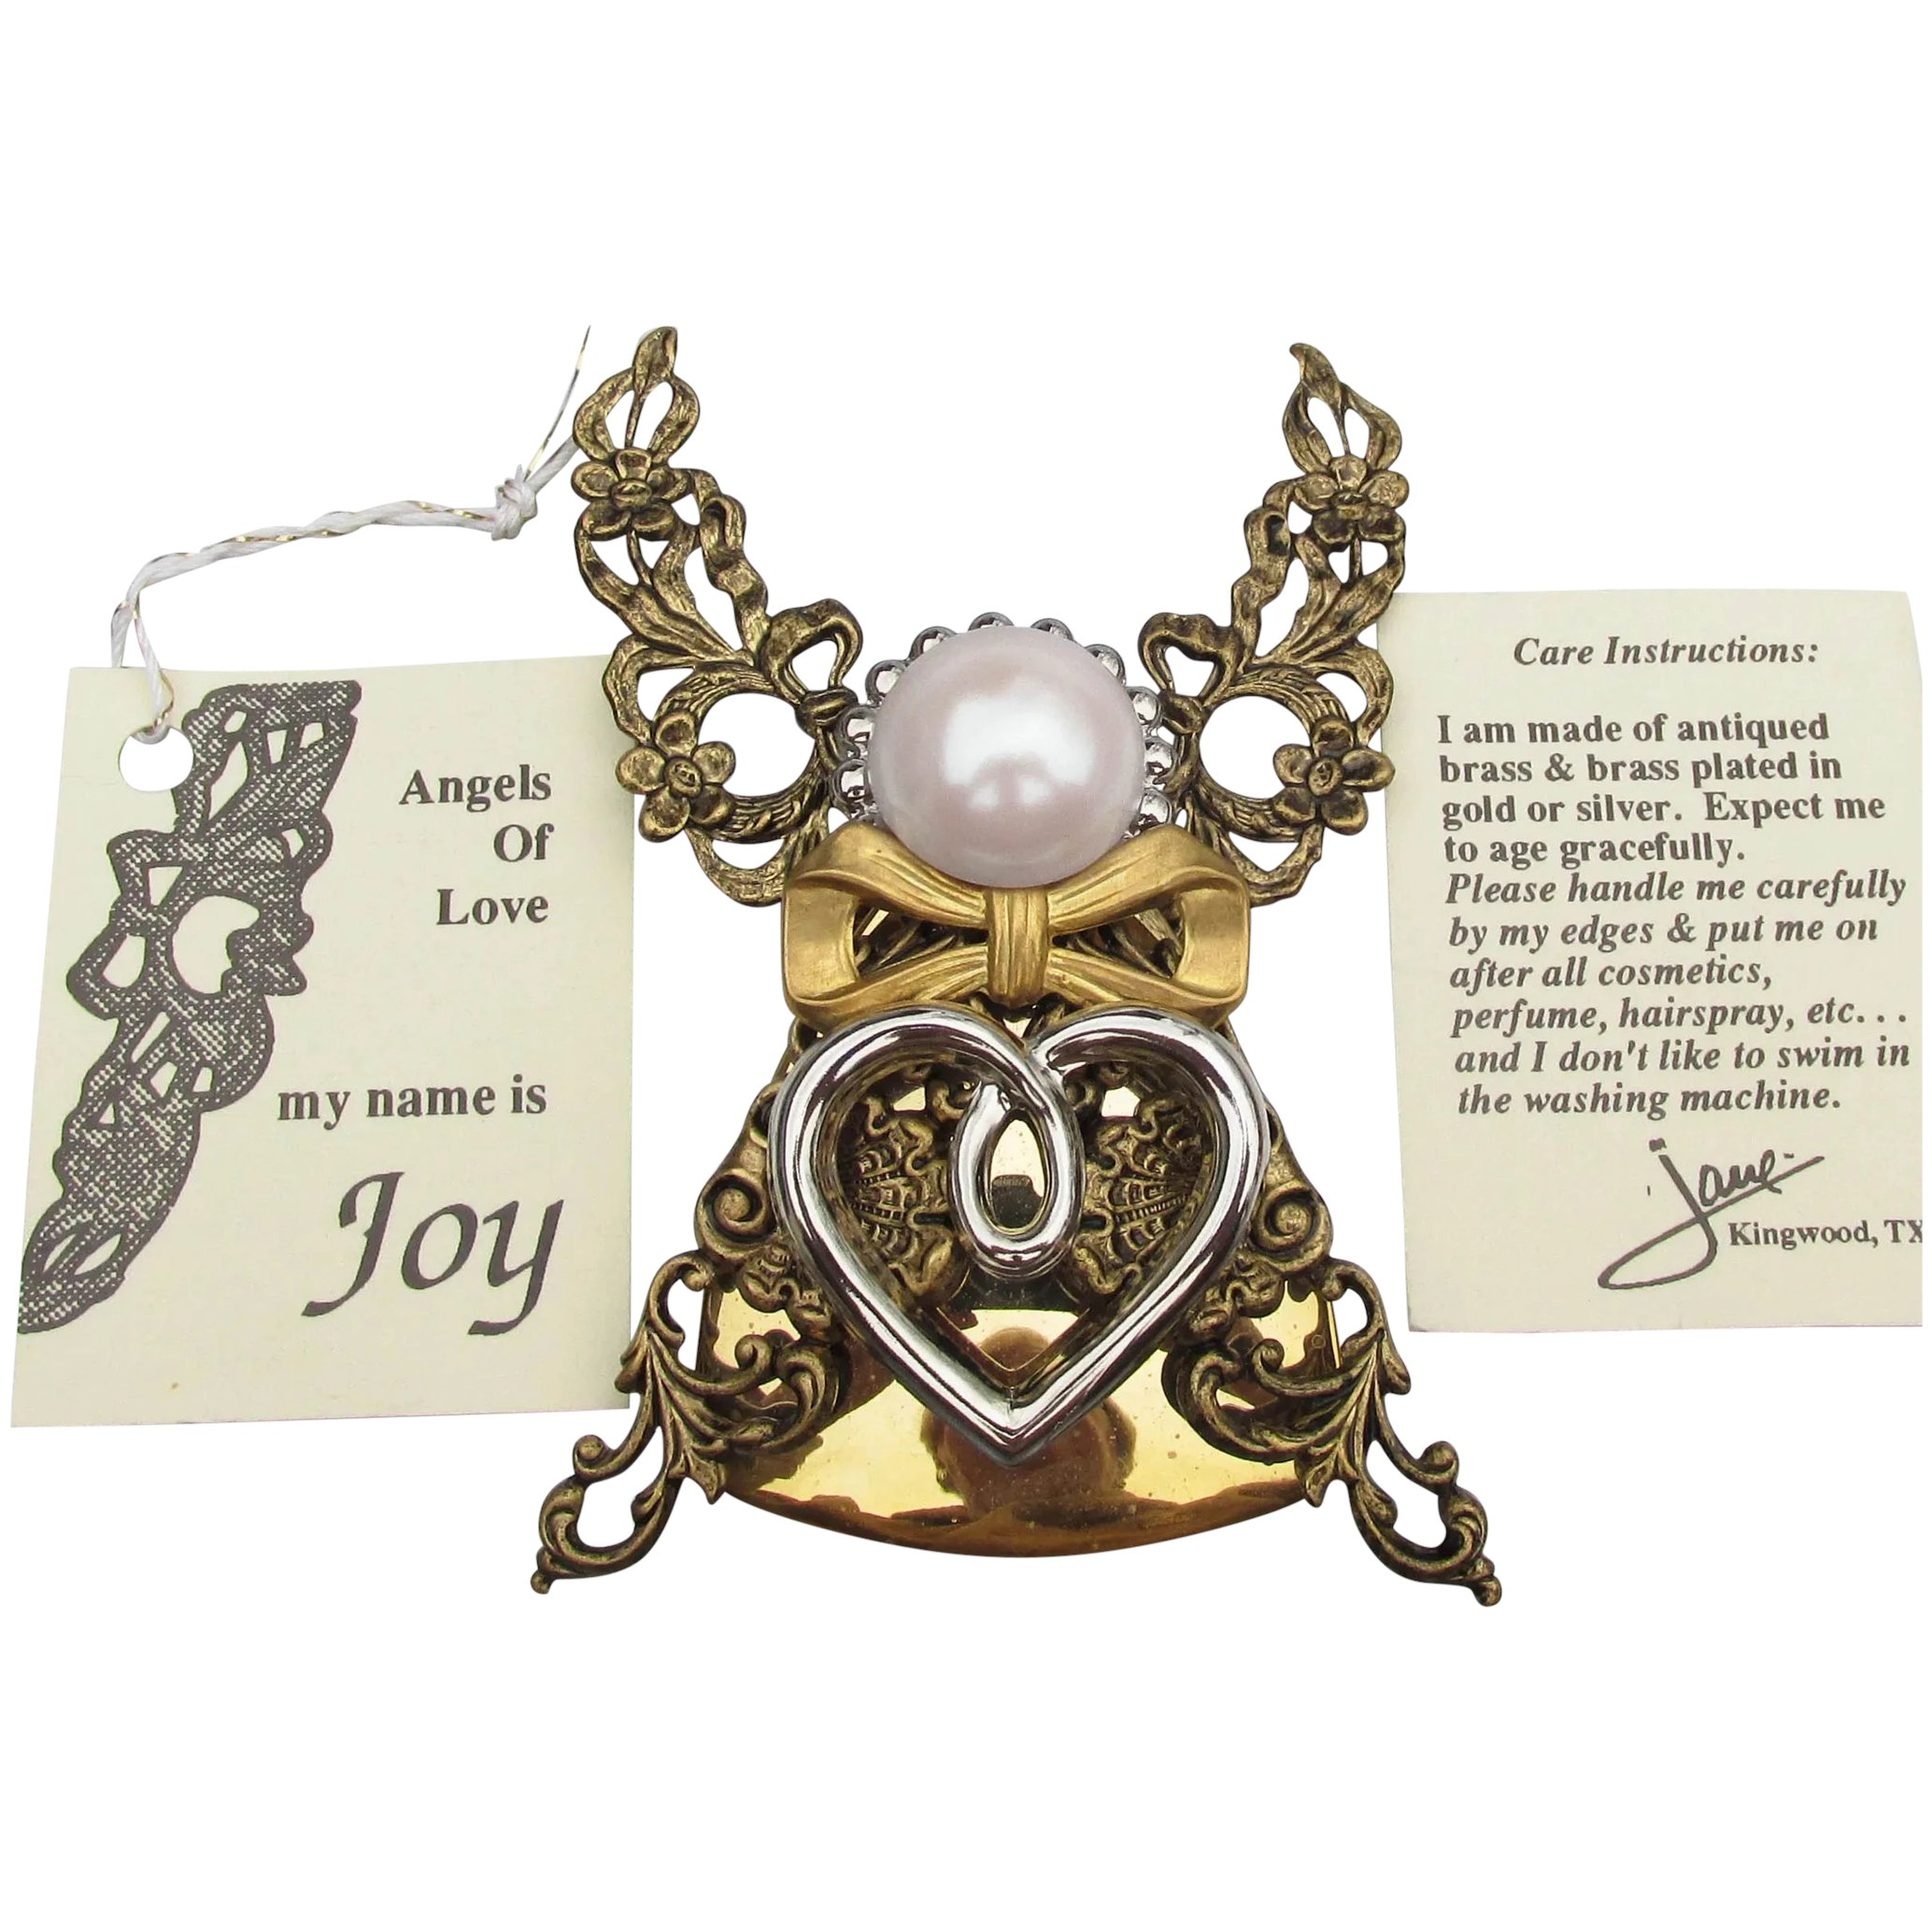 Jane Davis Brooch Pin 1.5 Vintage Angels of Love Signed AOL Heart Engraved Angel Jewelry Religious Biblical Collectible Jewelry Jewellery